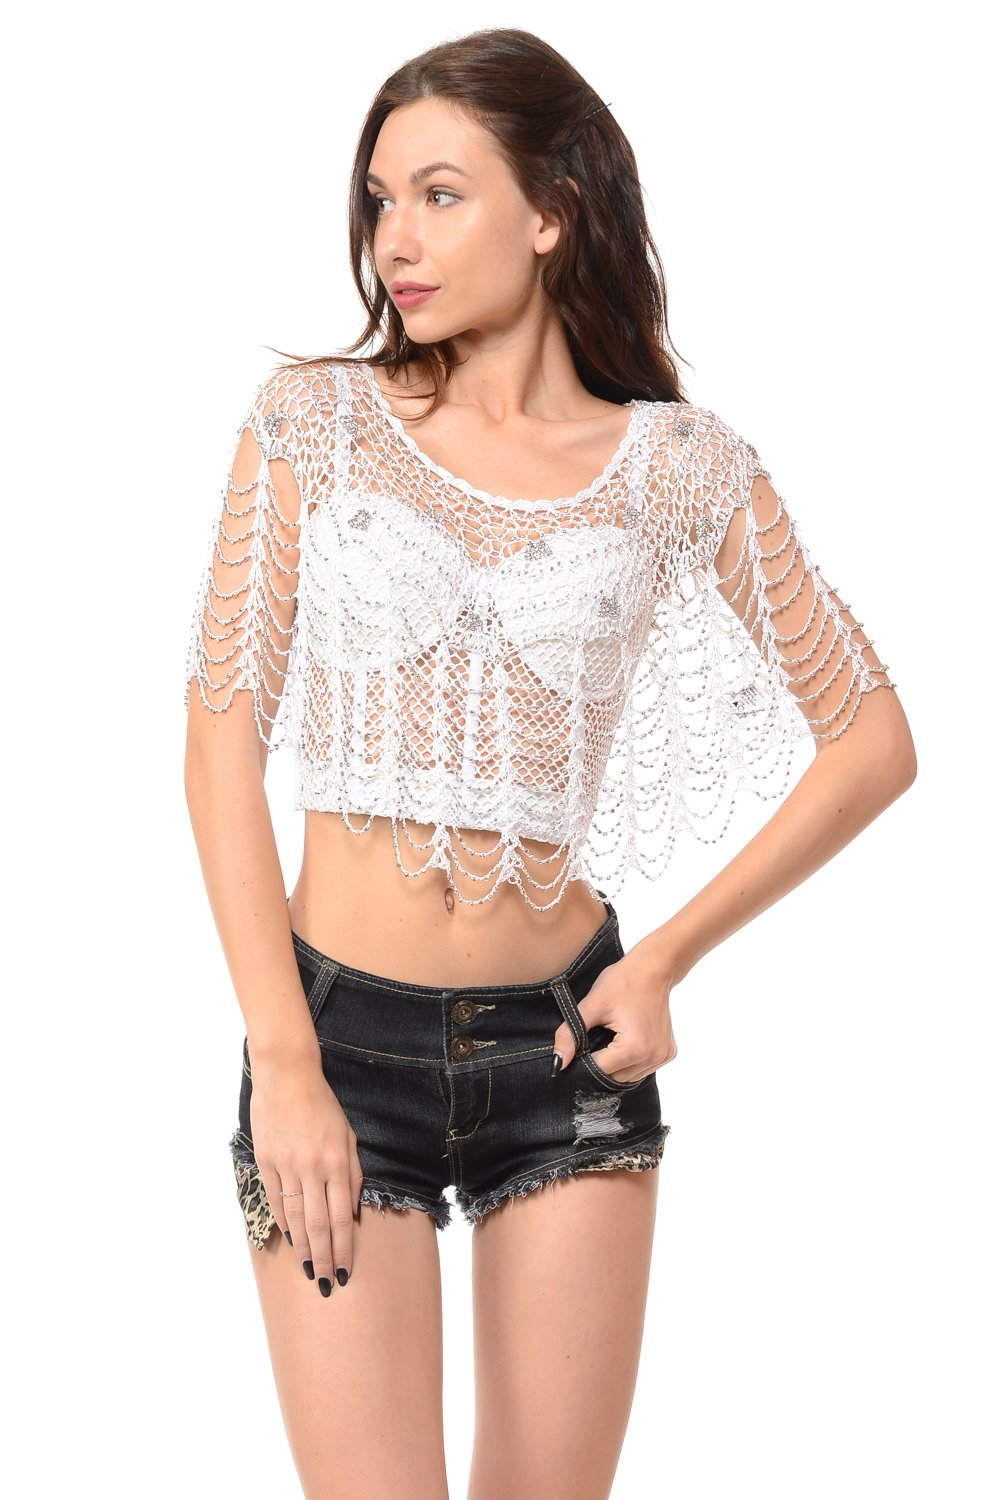 Sexy Tunic Metallic Beaded Web Styles Shawl Crochet Poncho Short Cape Flapper Top (One, White)